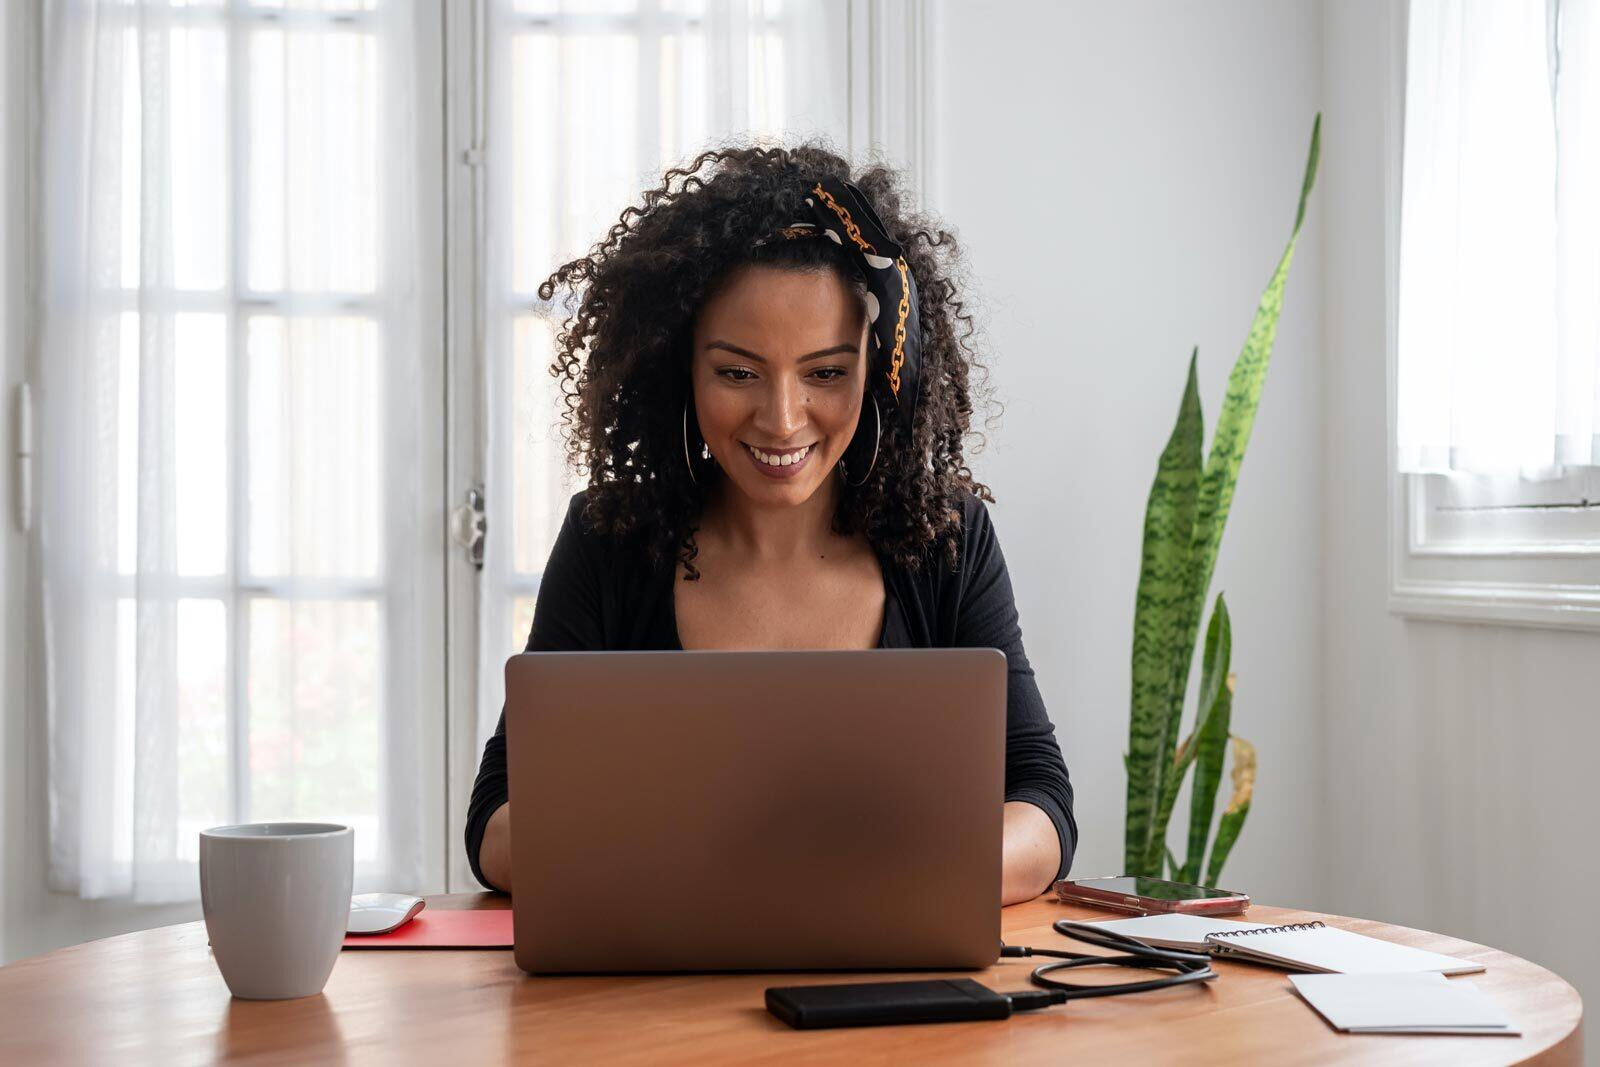 A woman with a smile is working on a laptop.